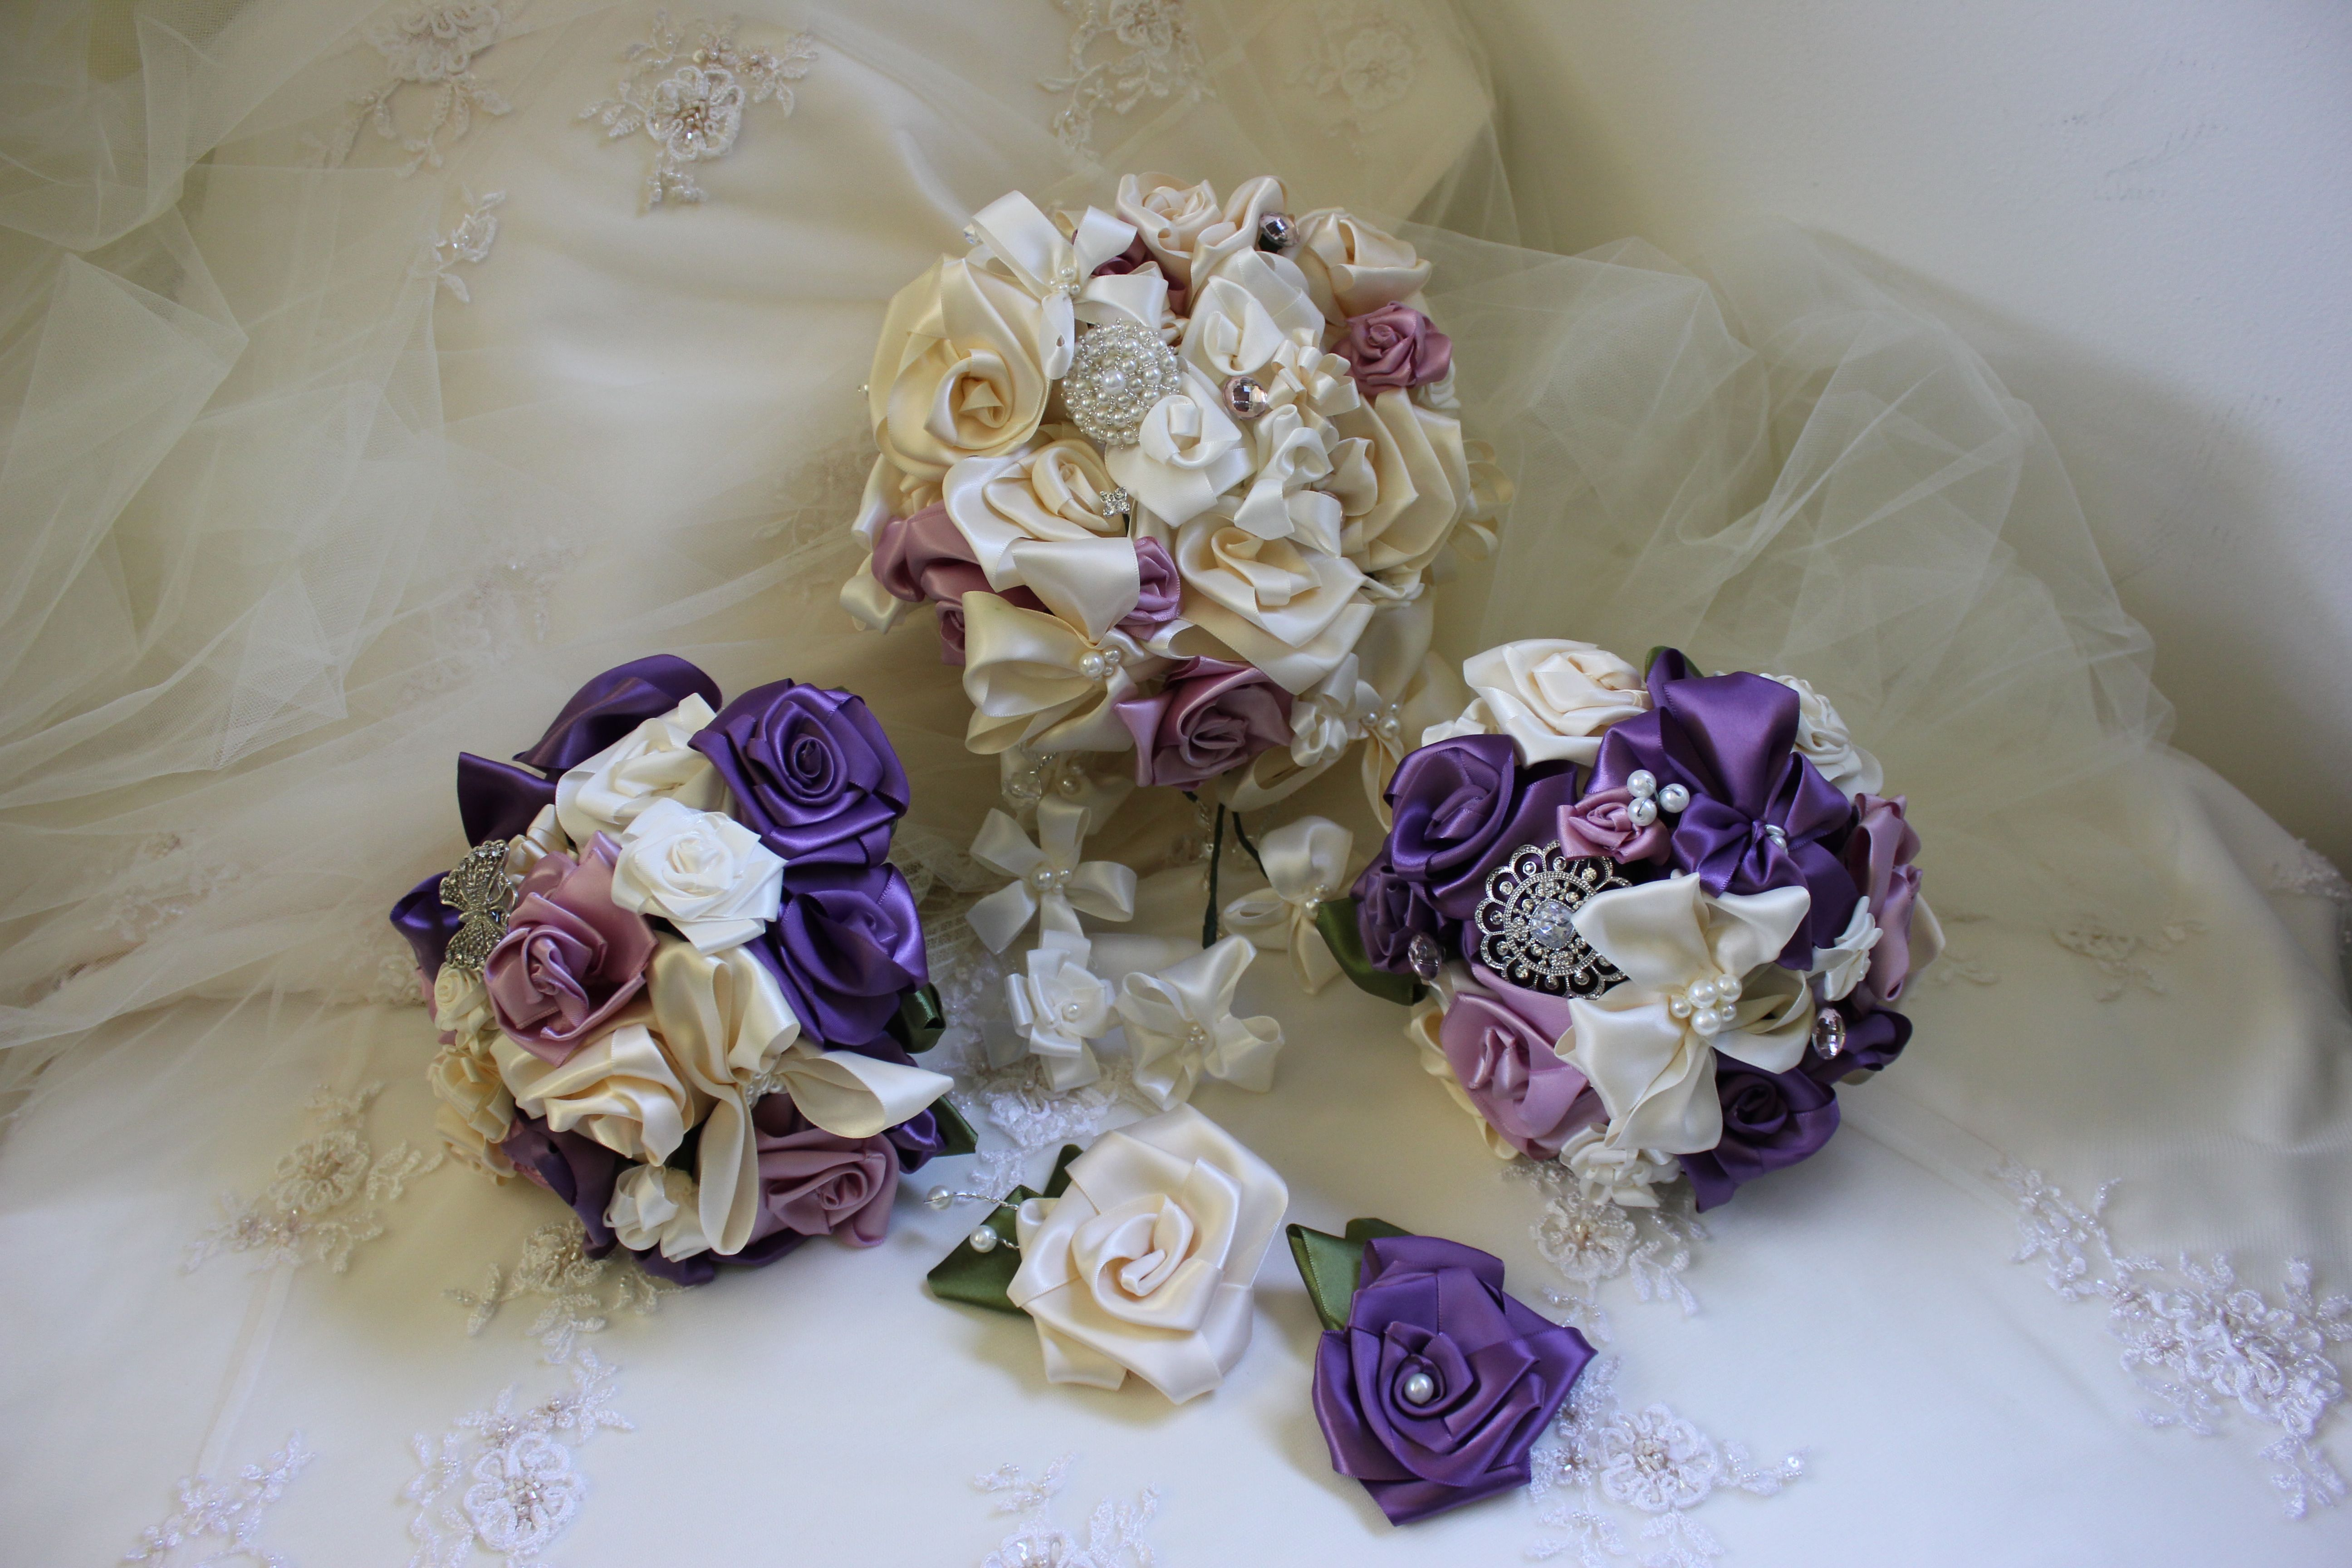 Ribbon Bouquets Very Easy To Make Cost Depends On How Much The